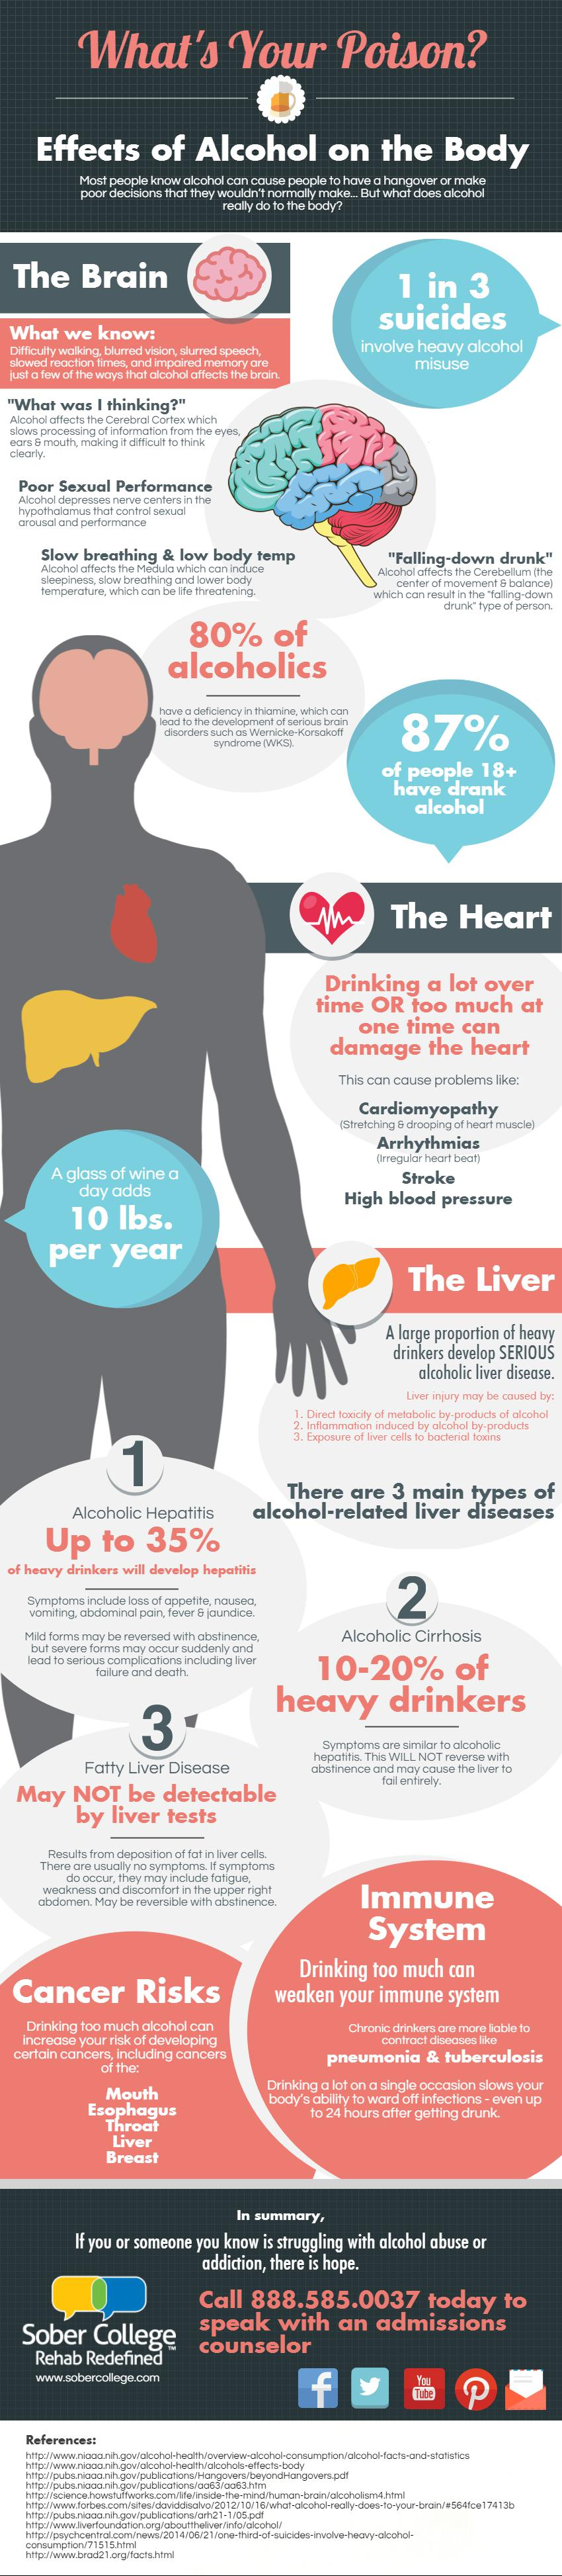 effects of alcohol on the body | Alcohol Abuse Infographic